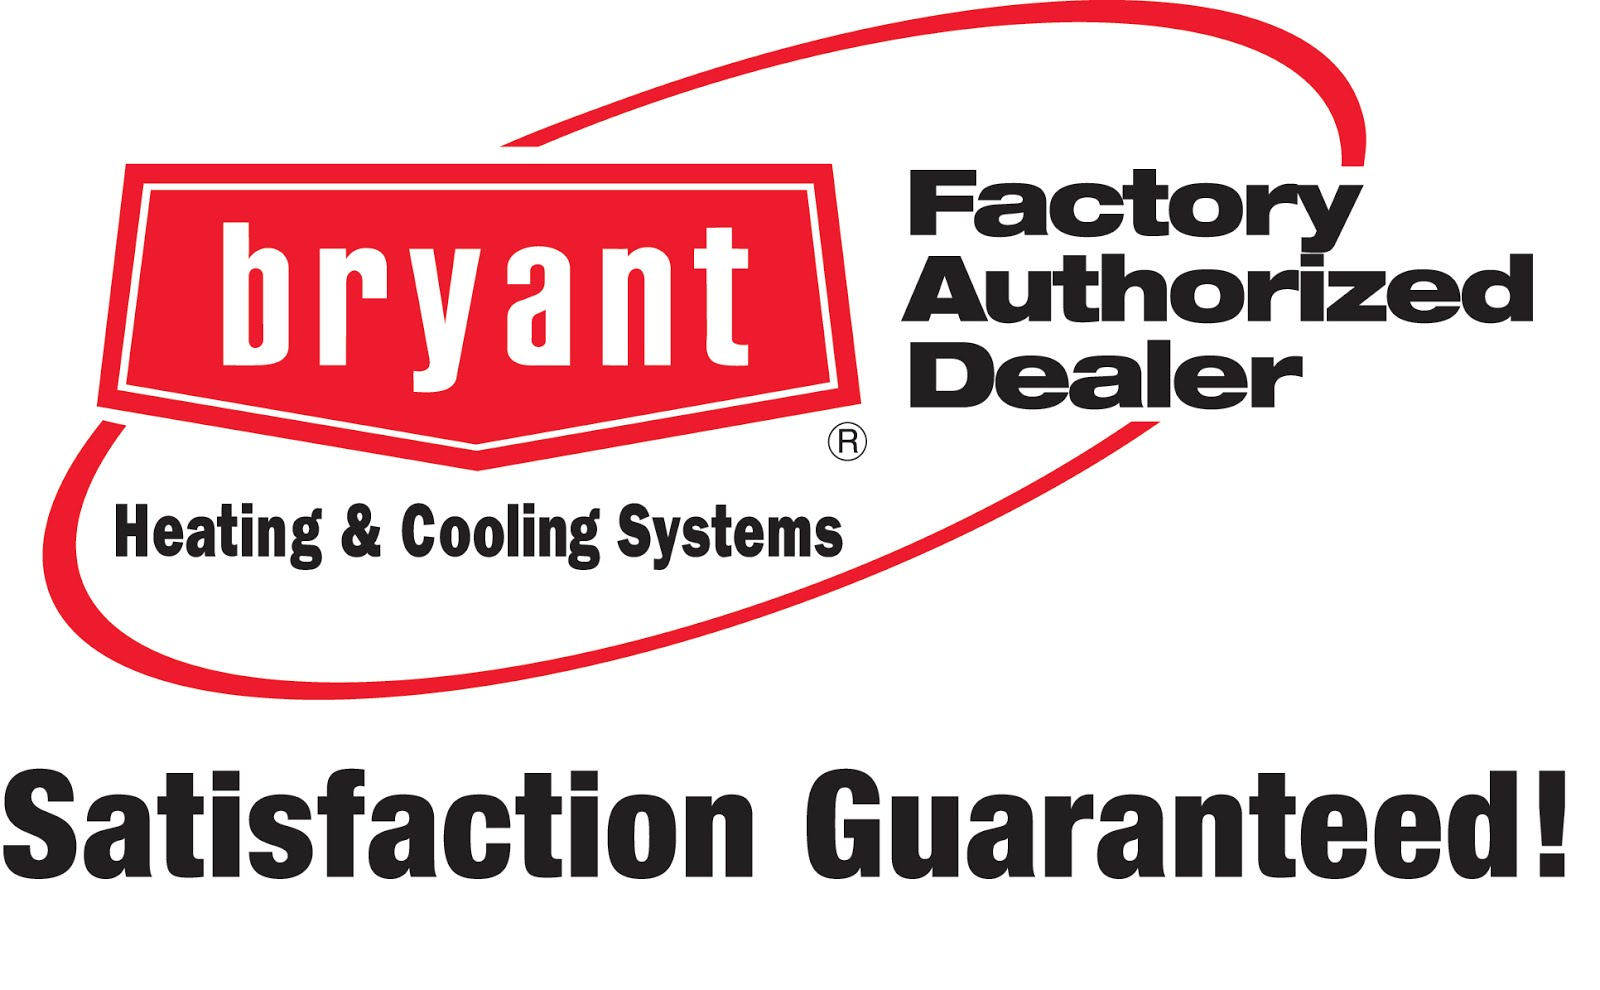 Certified Bryant Dealer in Ann Arbor!